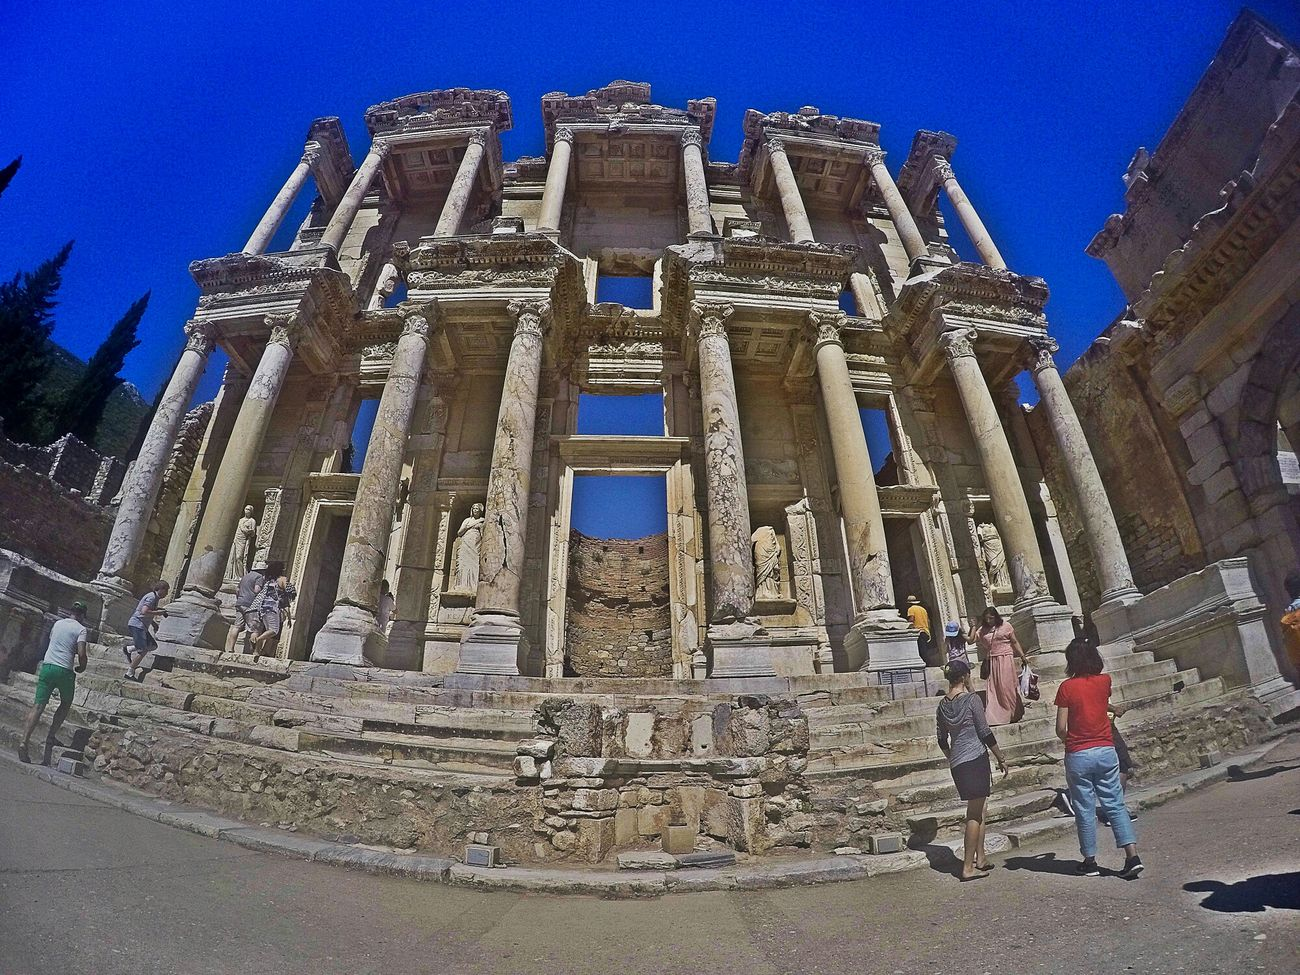 Efes Ephesus Turkey Visitturkey Travel Shooting Library Library Of Celsus Celsus Historical Building Historical Historic Historical Monuments Historical Place Historic City Eyeem Ephesus - Turkey Turkeystagram Turkeyphotooftheday Goprohero4 Gopro Shots Goprooftheday GoPrography